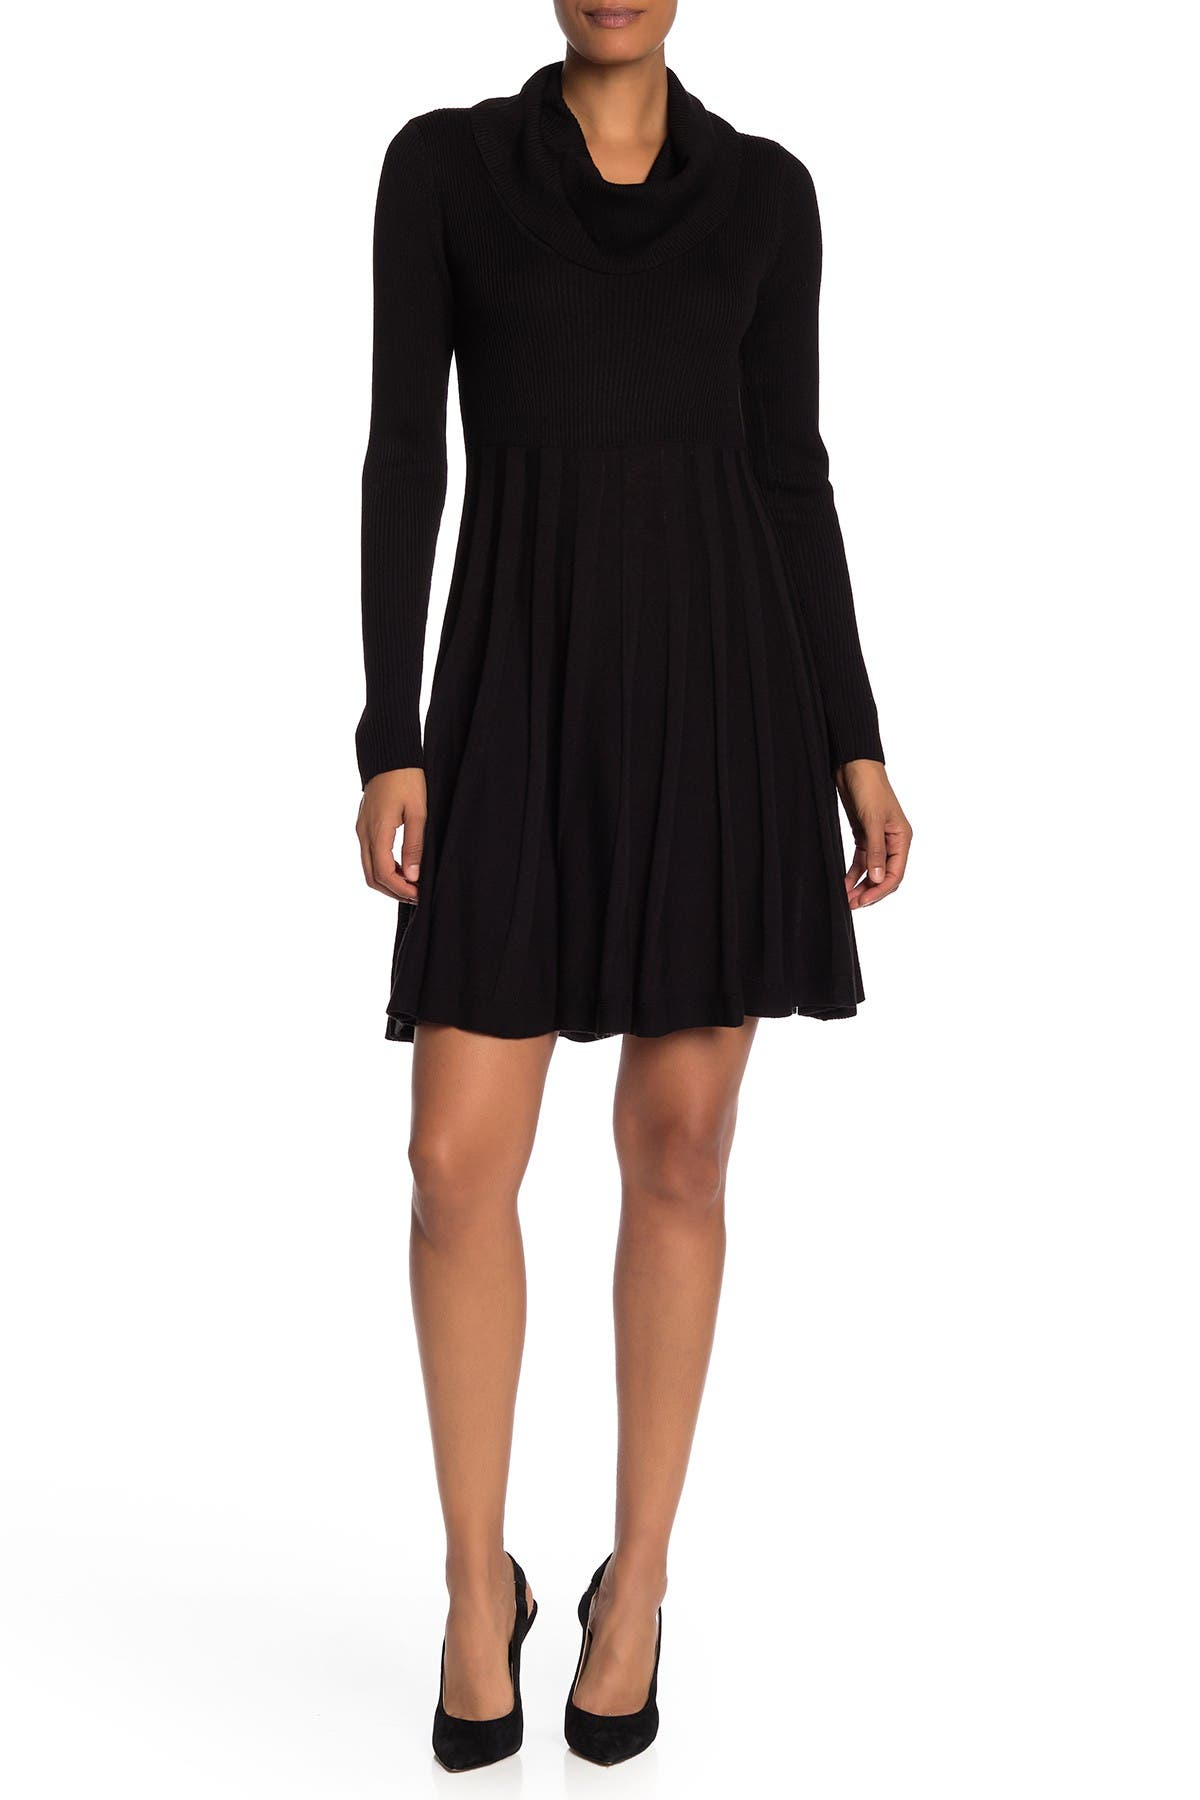 Image of ZNDU Modern American Designer Cowl Neck Fit & Flare Sweater Dress